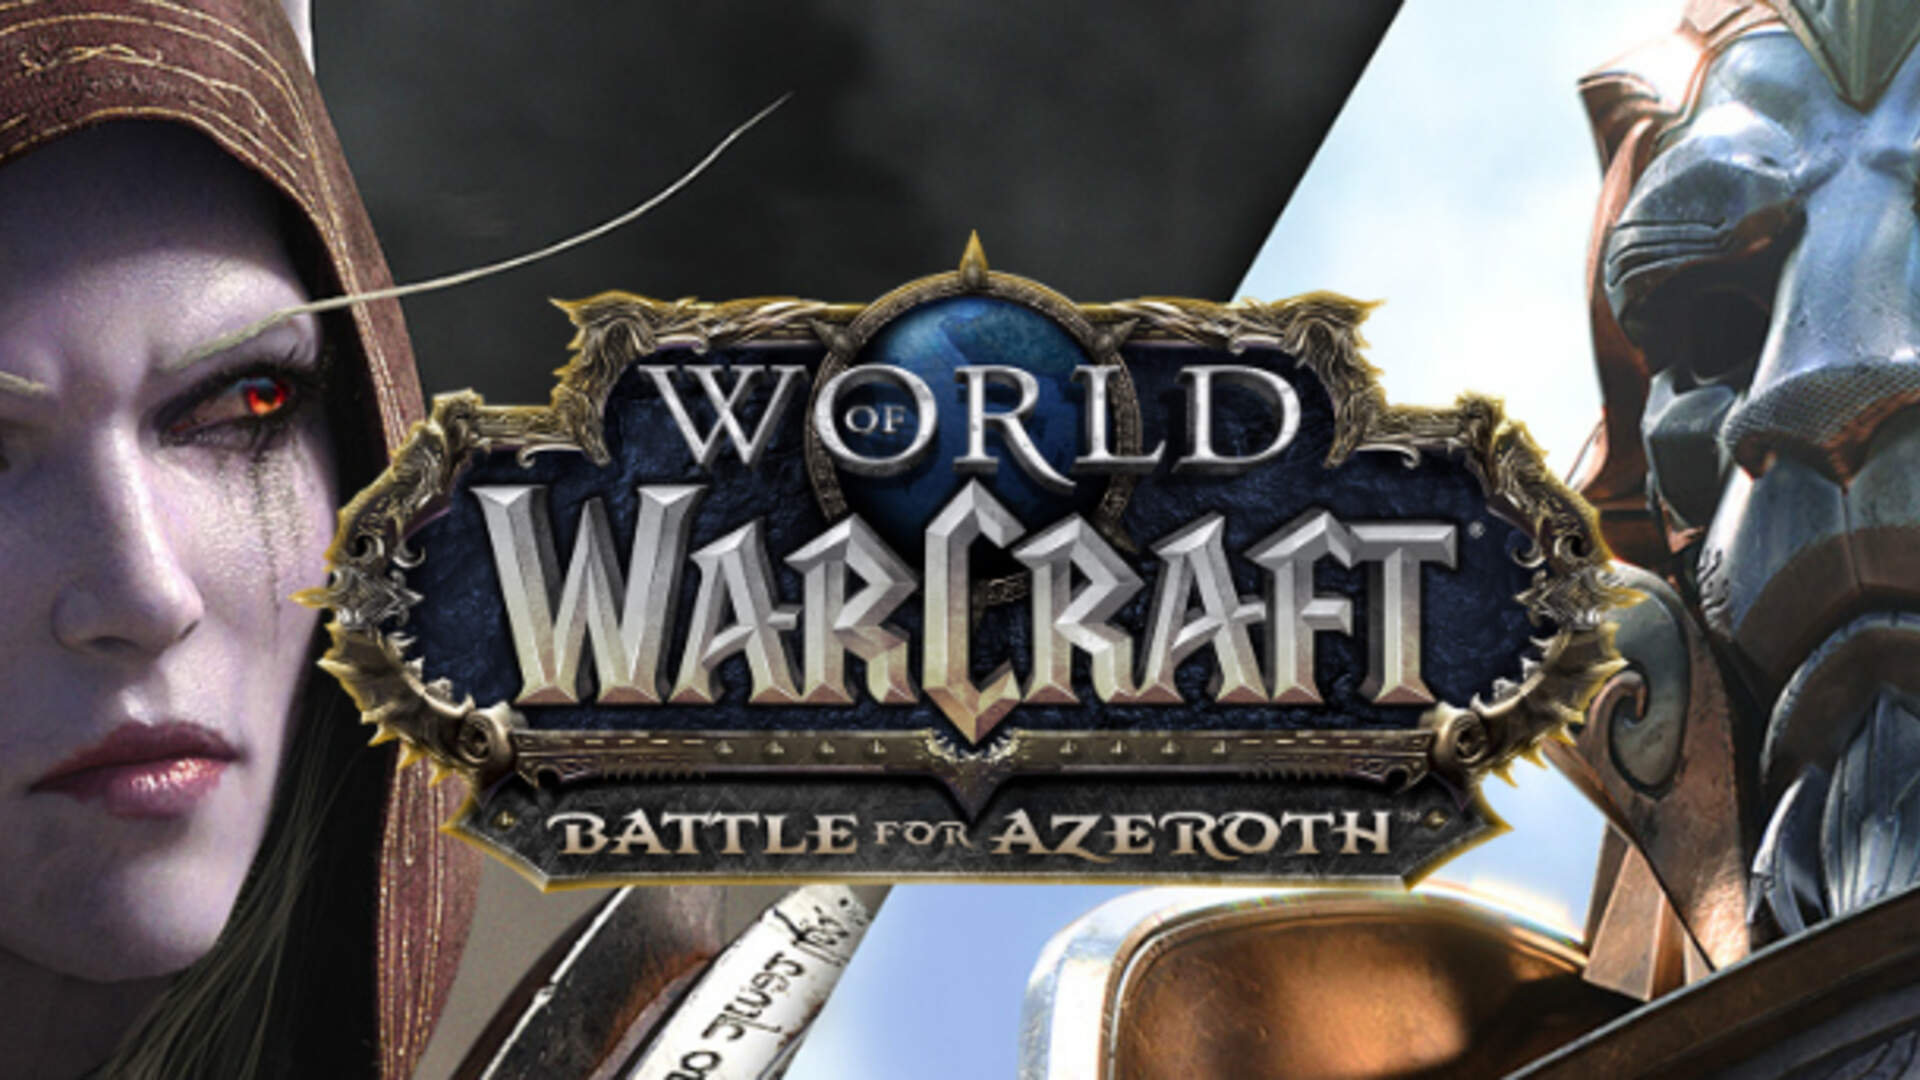 World of Warcraft: Battle for Azeroth - Release Date, Price, New Level Scaling, New Allied Races - Everything we Know